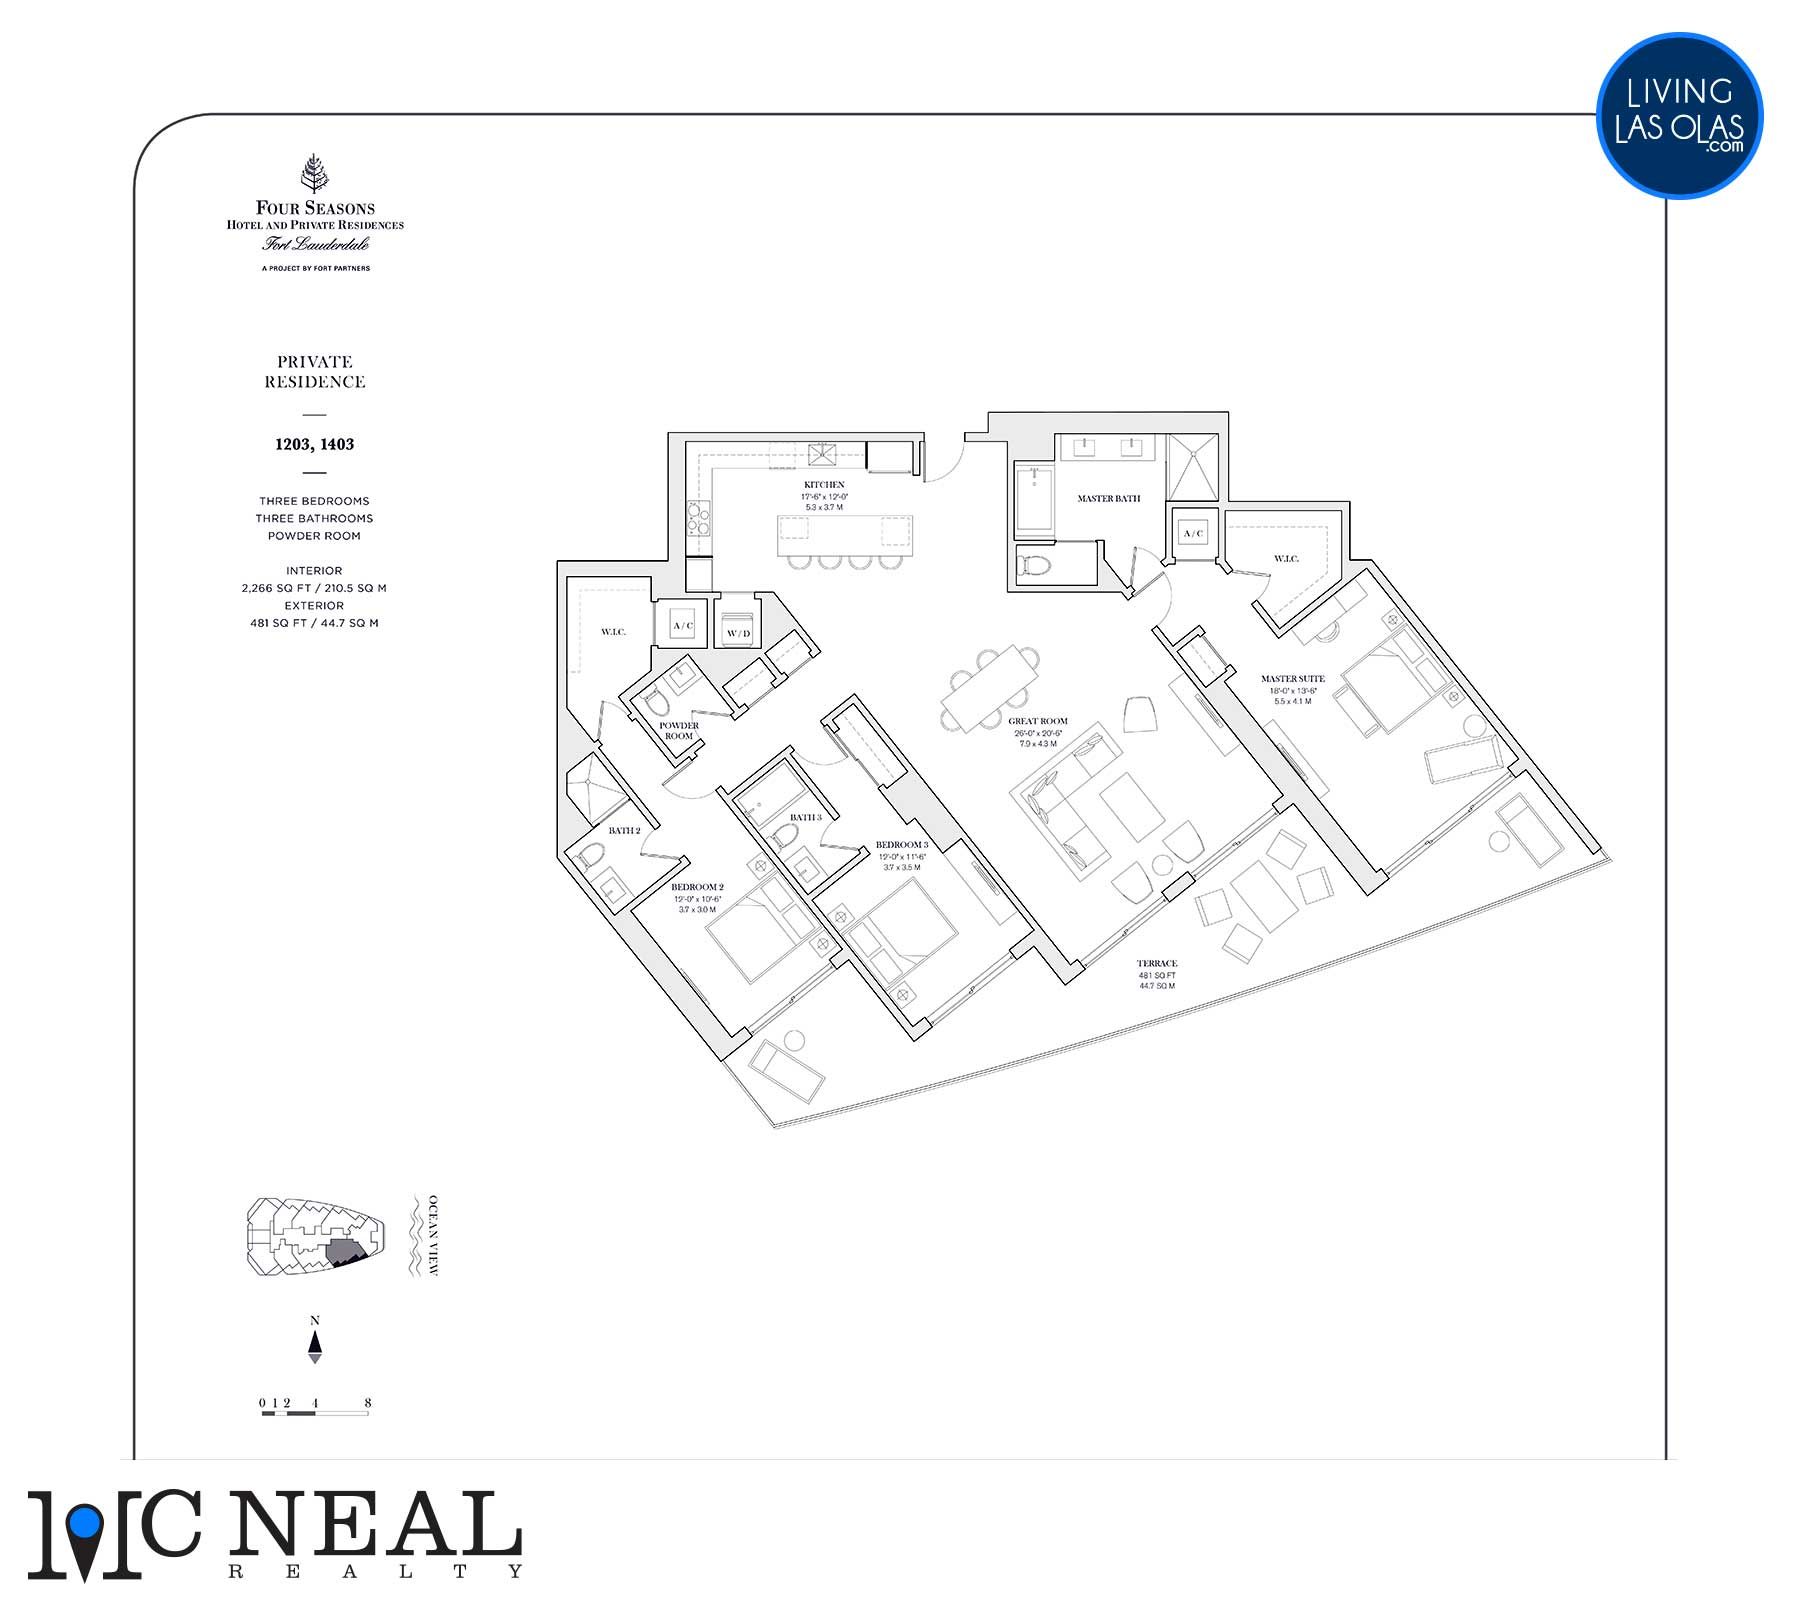 Four Seasons Private Residences Floor Plan 1203-1403